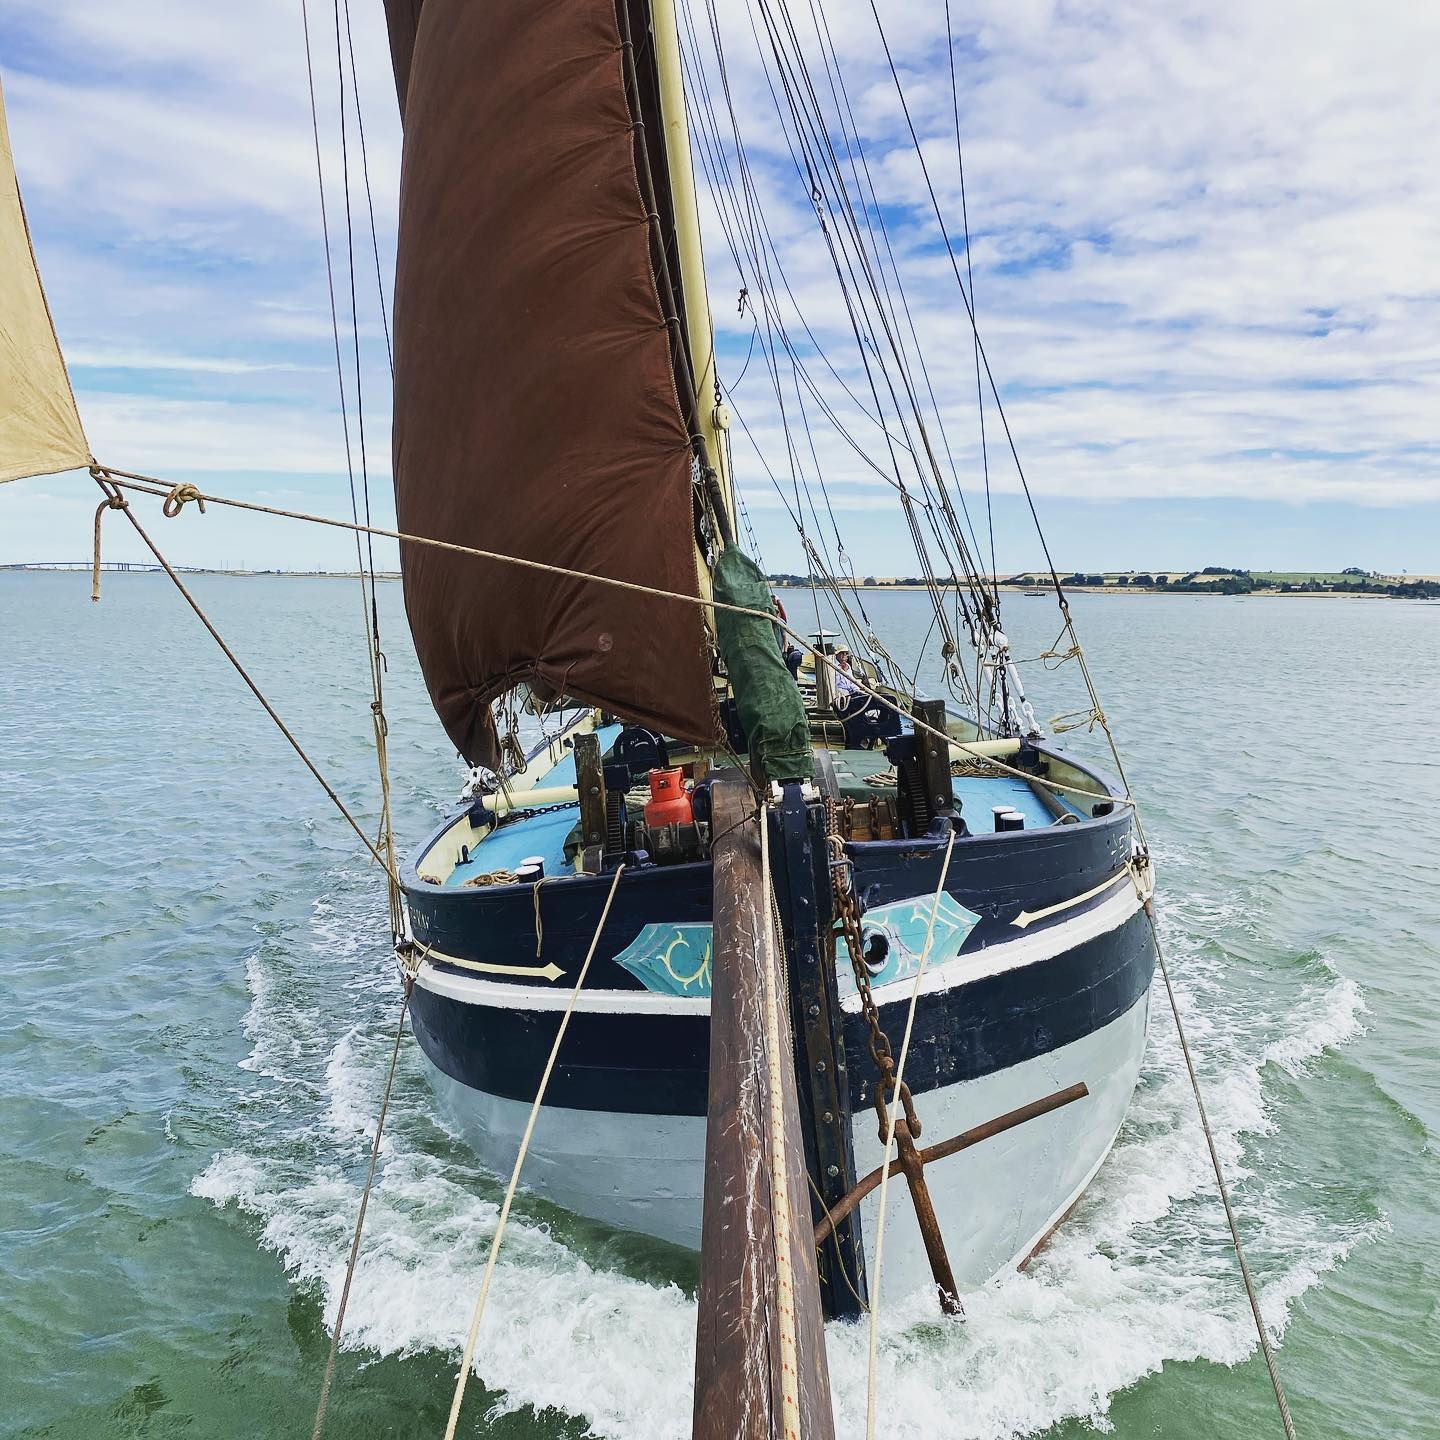 Edith May sporting her new bowsprit, sailing off Upchurch (c) Tiller & Wheel